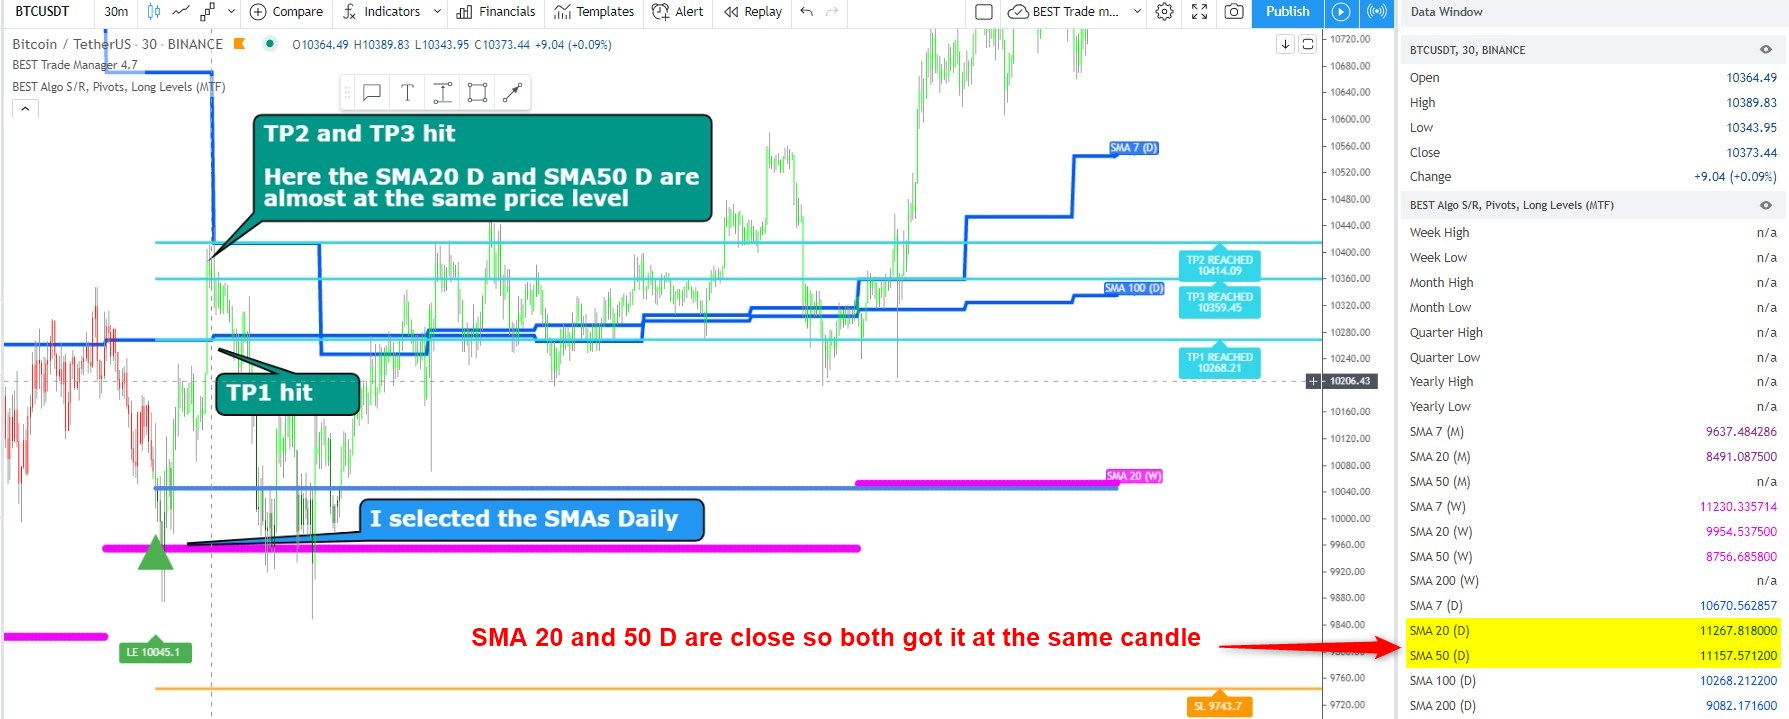 TradingView trade example using the trade manager with supports and resistances